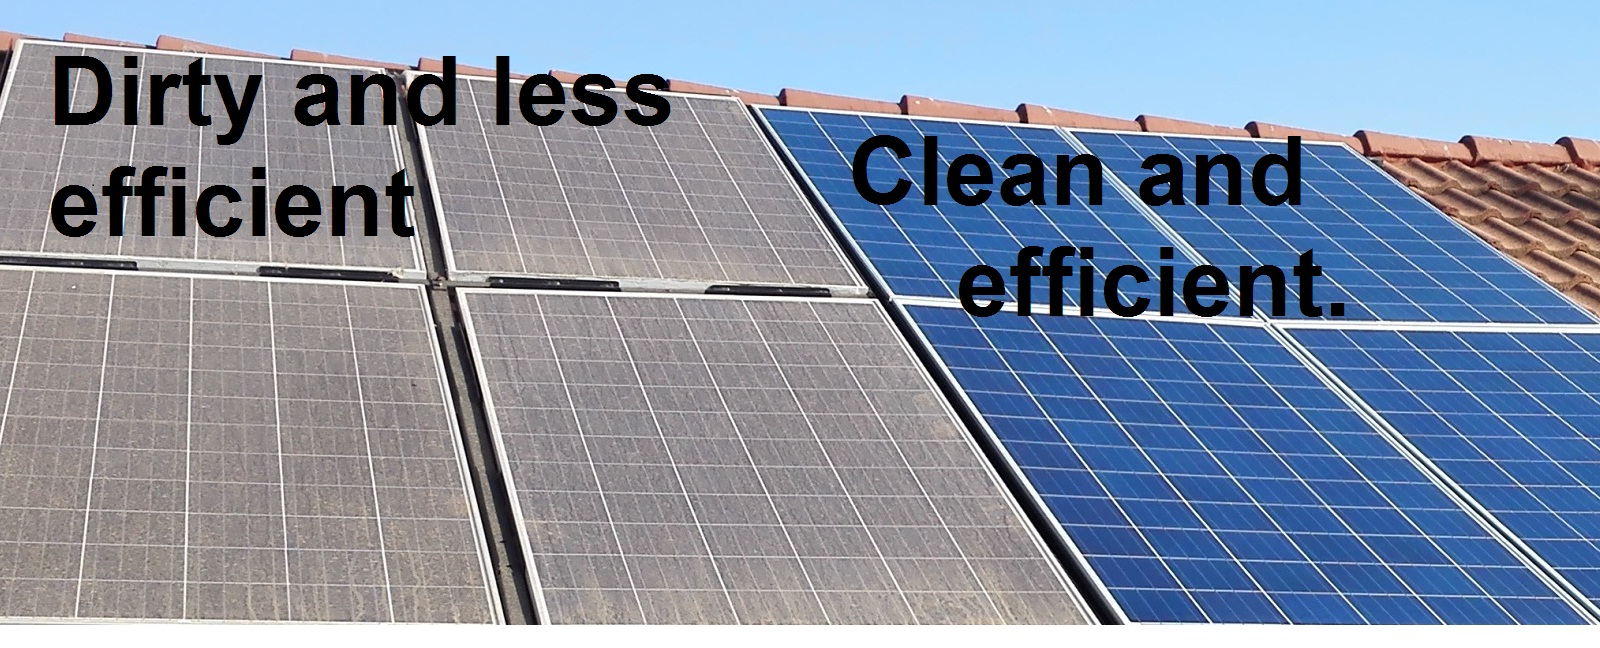 Clean to be efficient